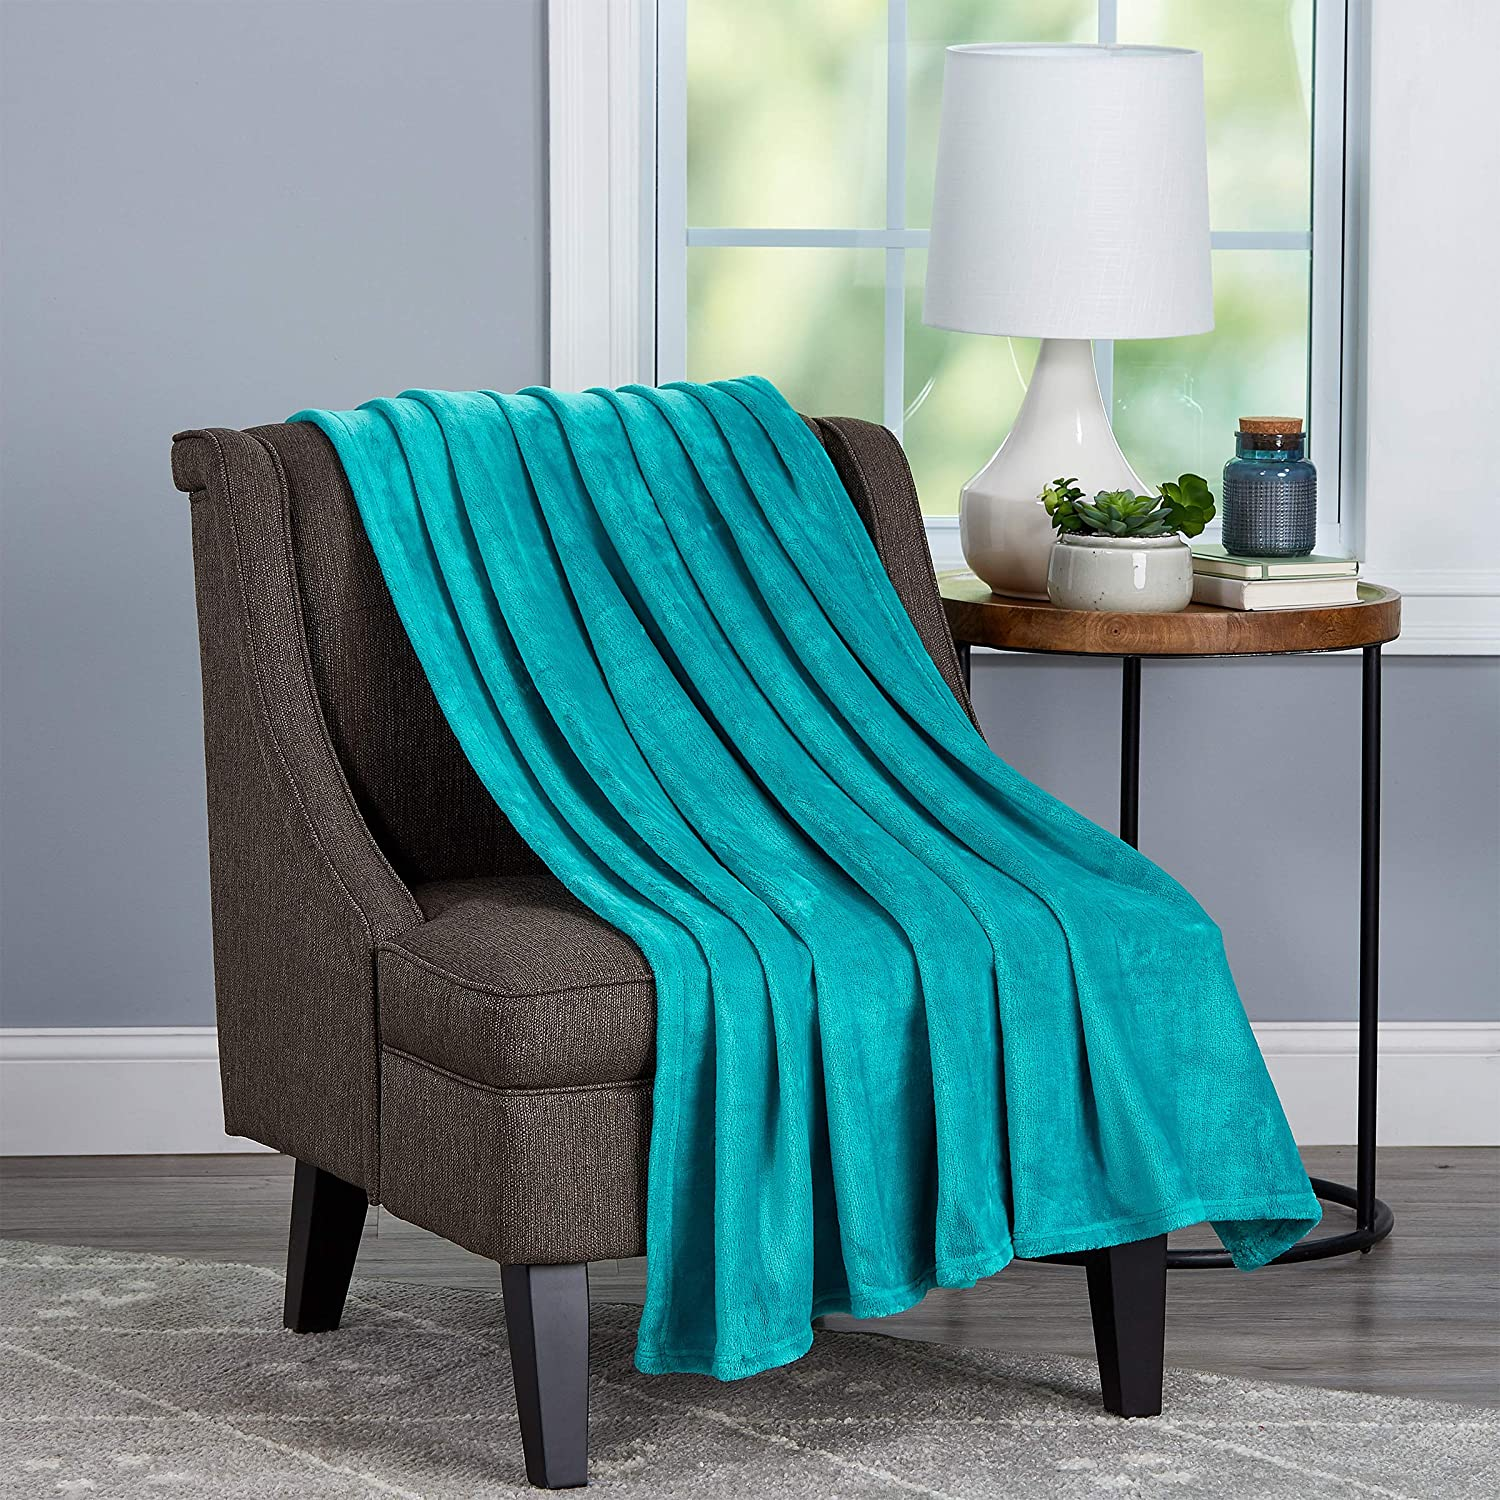 Lavish Home Collection Oversized Microfiber Velvet Solid Polyester Throw Blanket – Breathable and Machine Washable, (Lagoon Green)